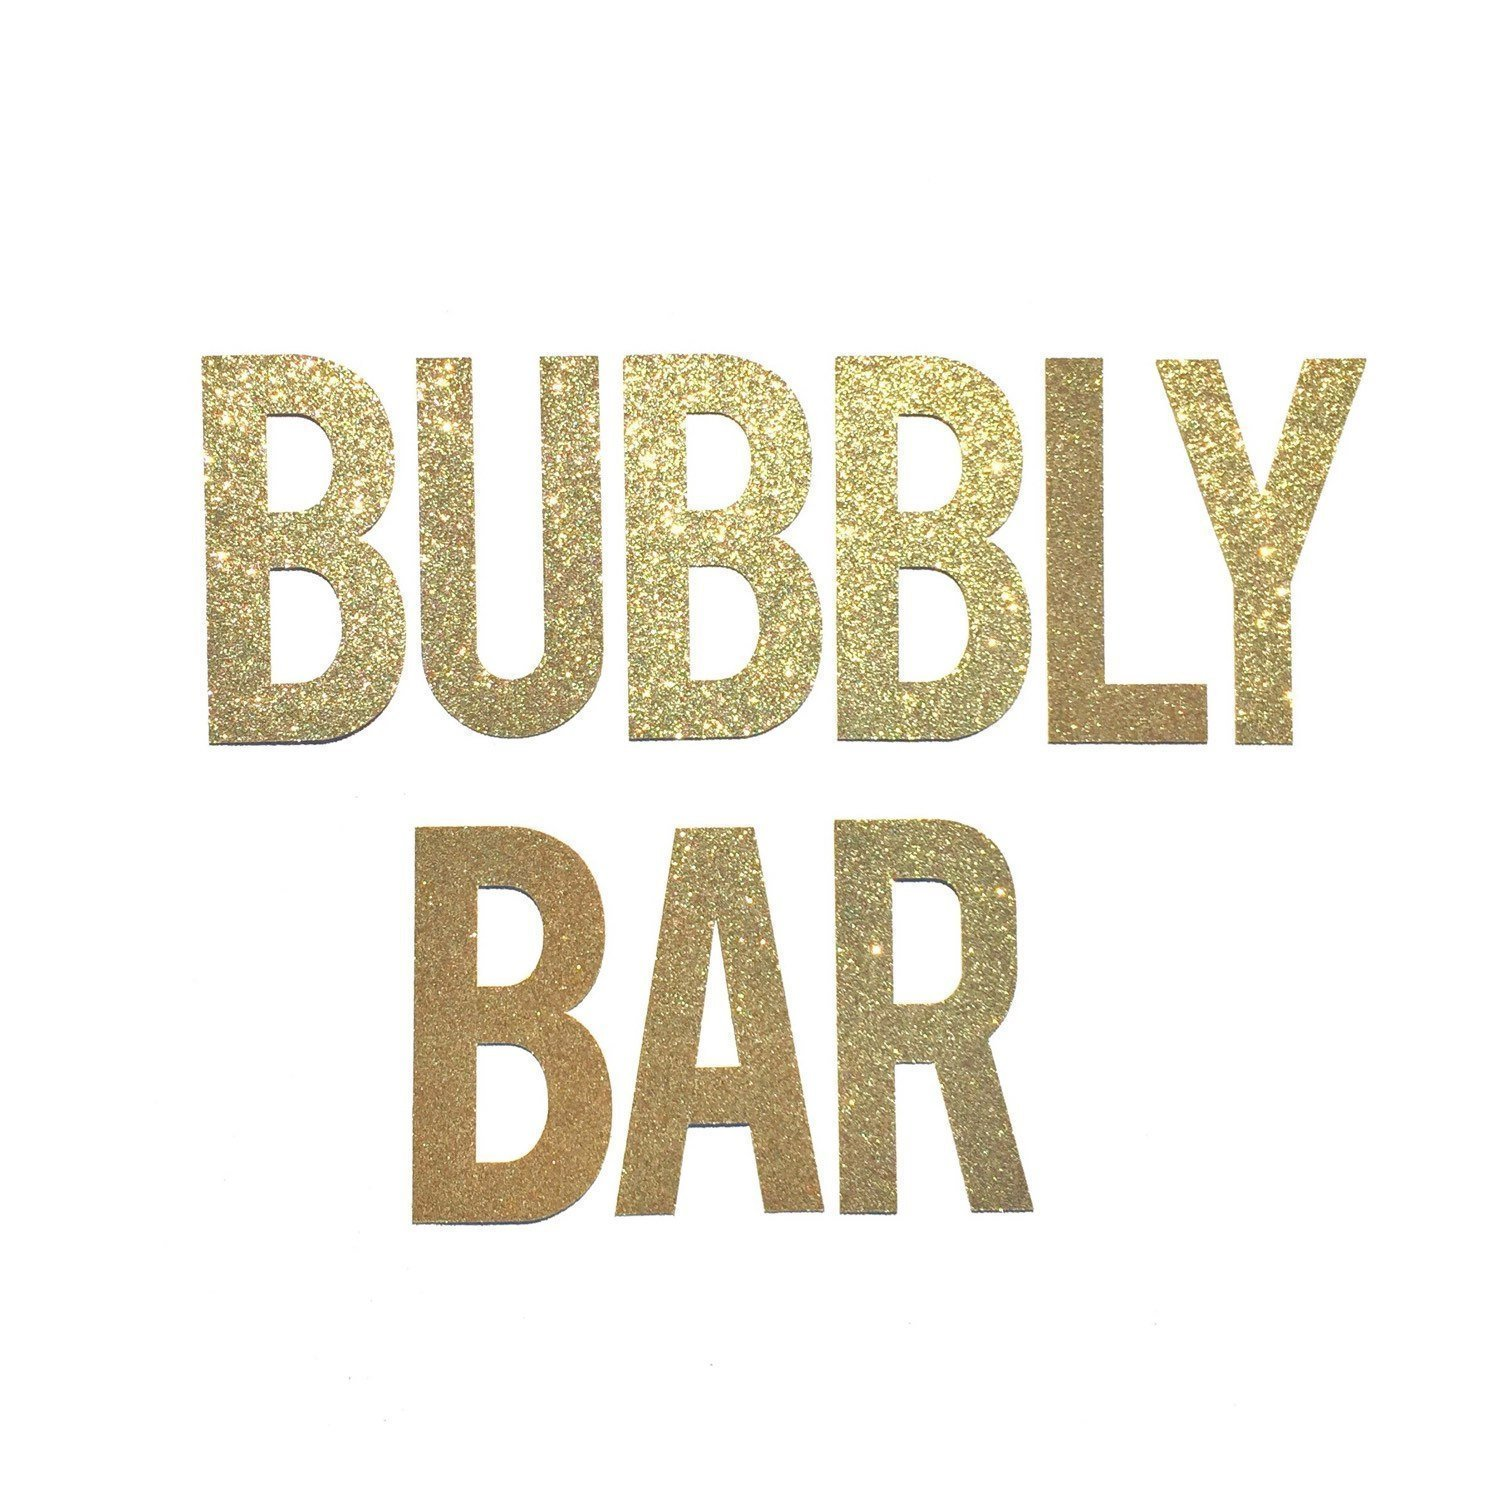 Well-liked Amazon.com: Bubbly Bar Banner | Bachelorette Party Decorations  LW39